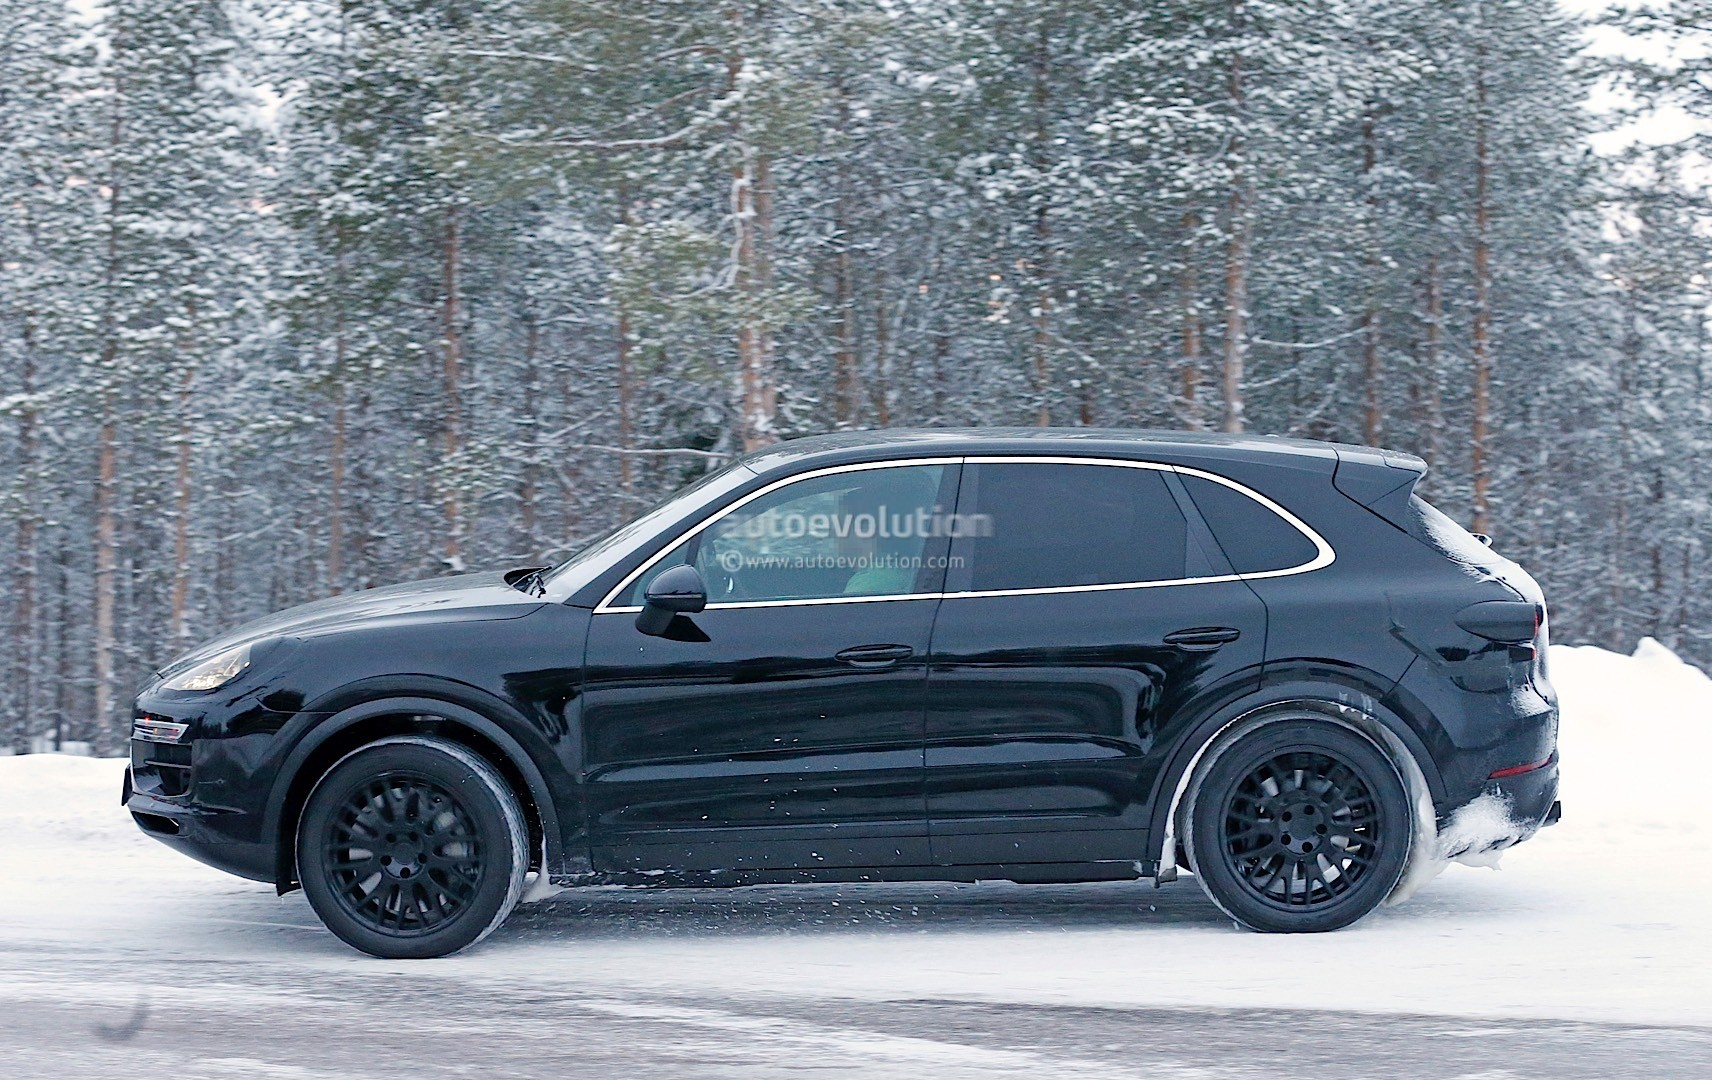 2018-porsche-cayenne-spied-once-more-enjoying-the-last-bits-of-winter_14